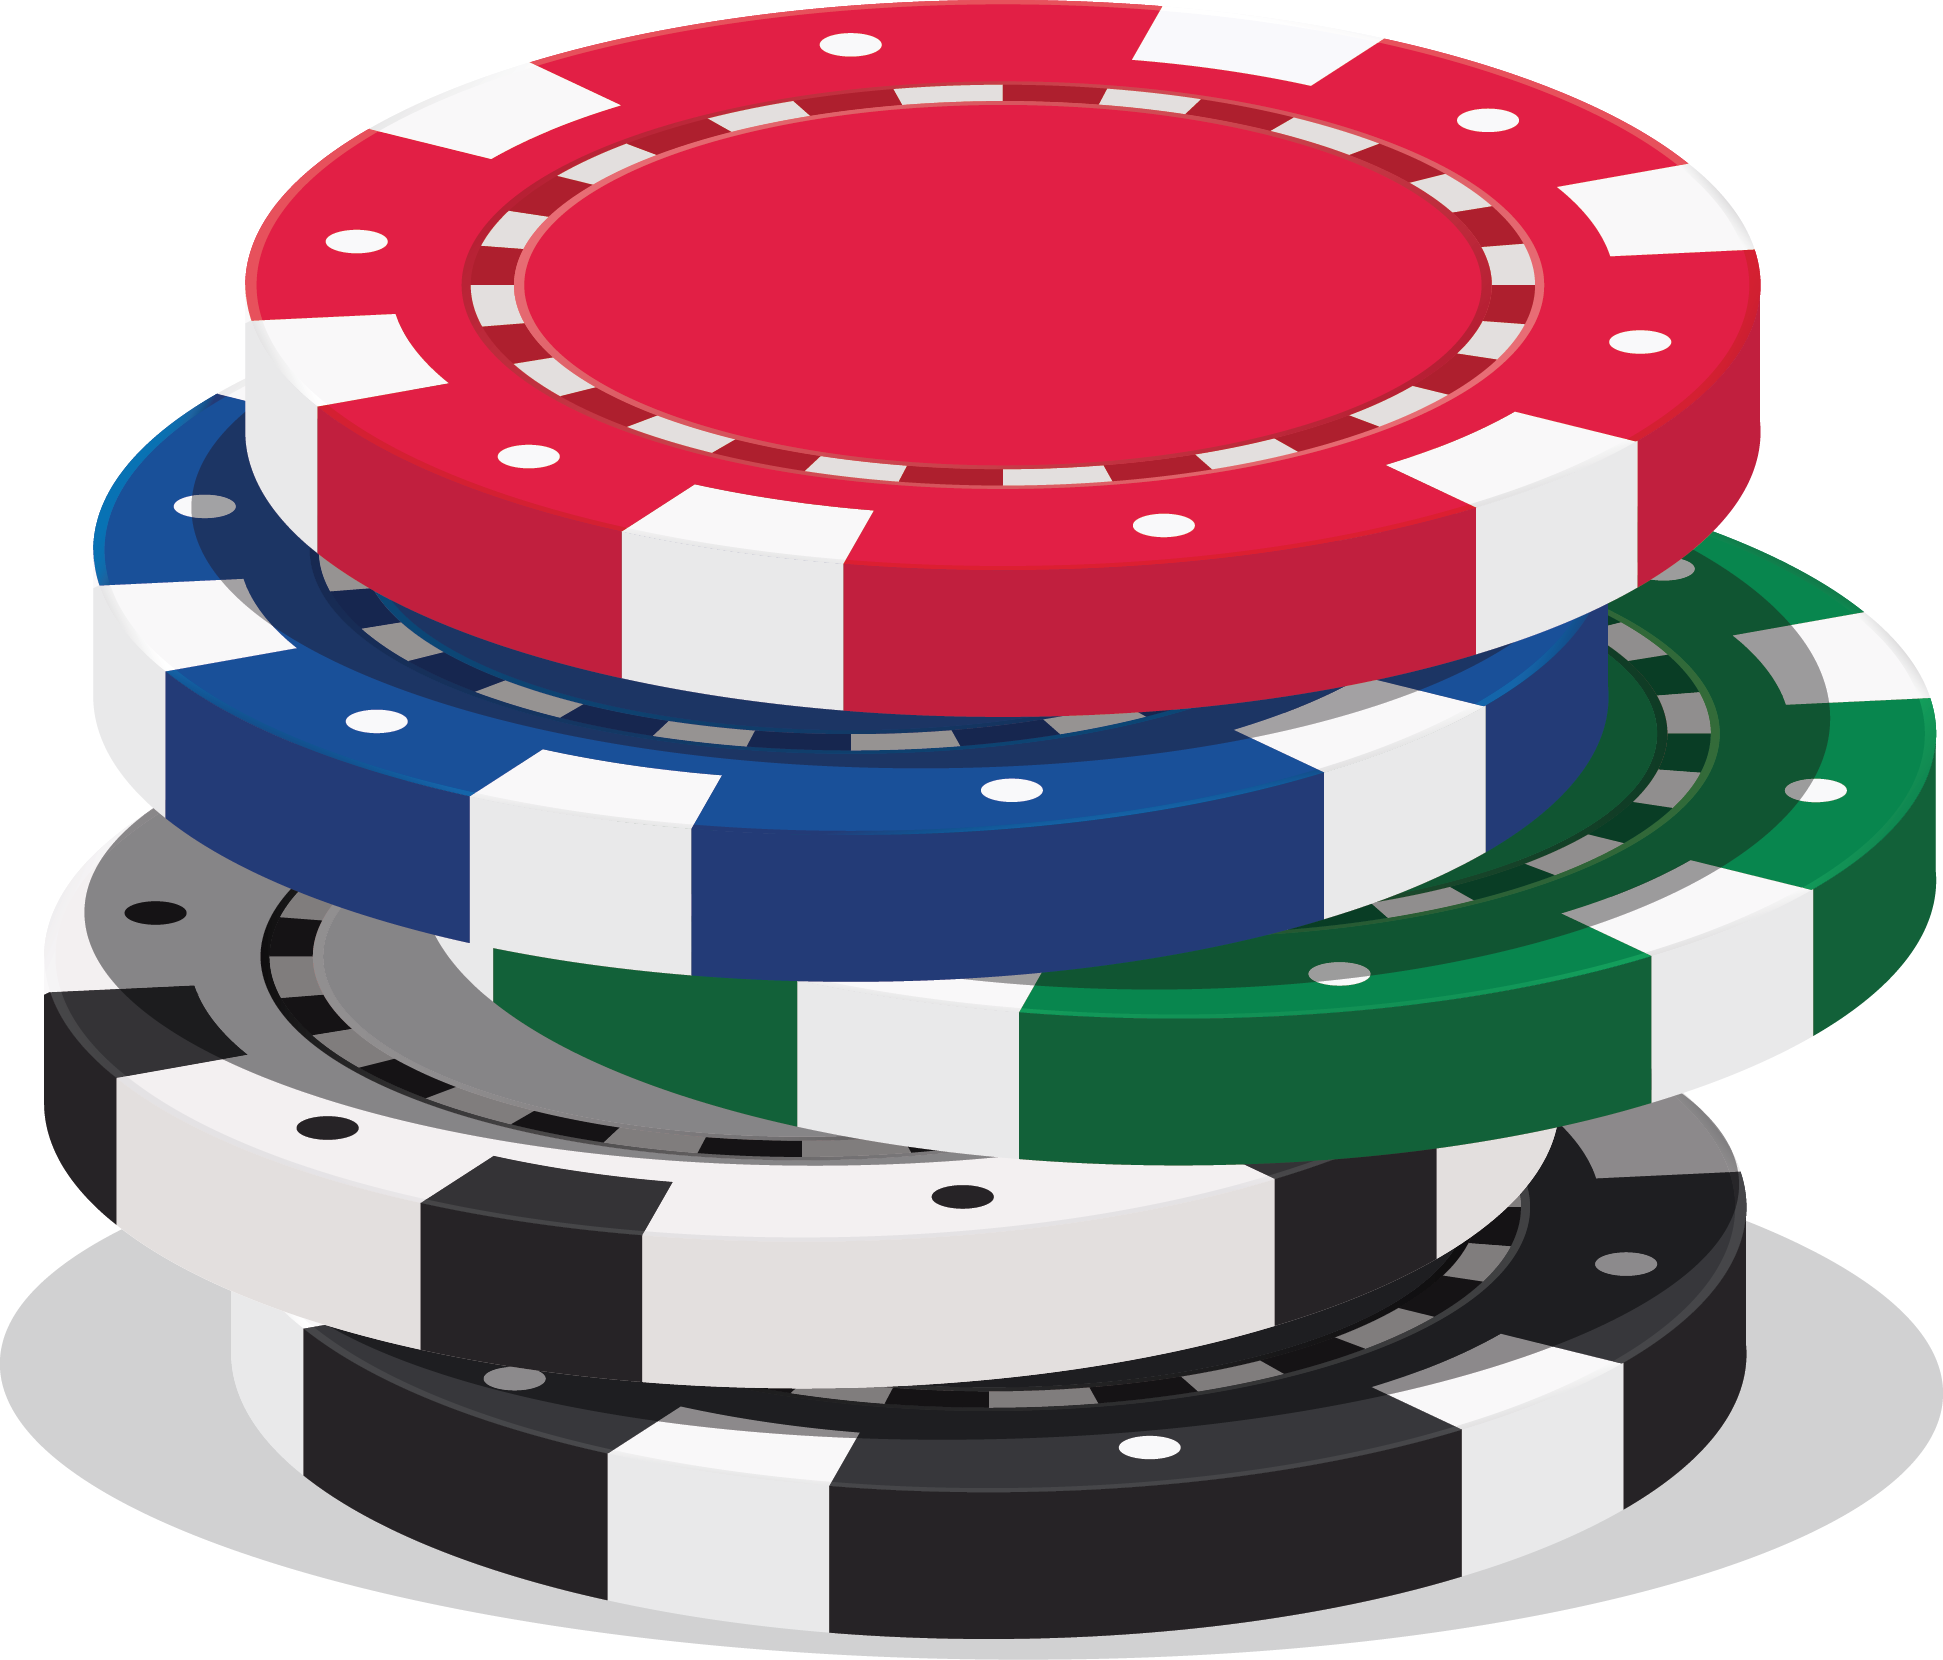 picture Chip stack chrysalis. Chips clipart poker.